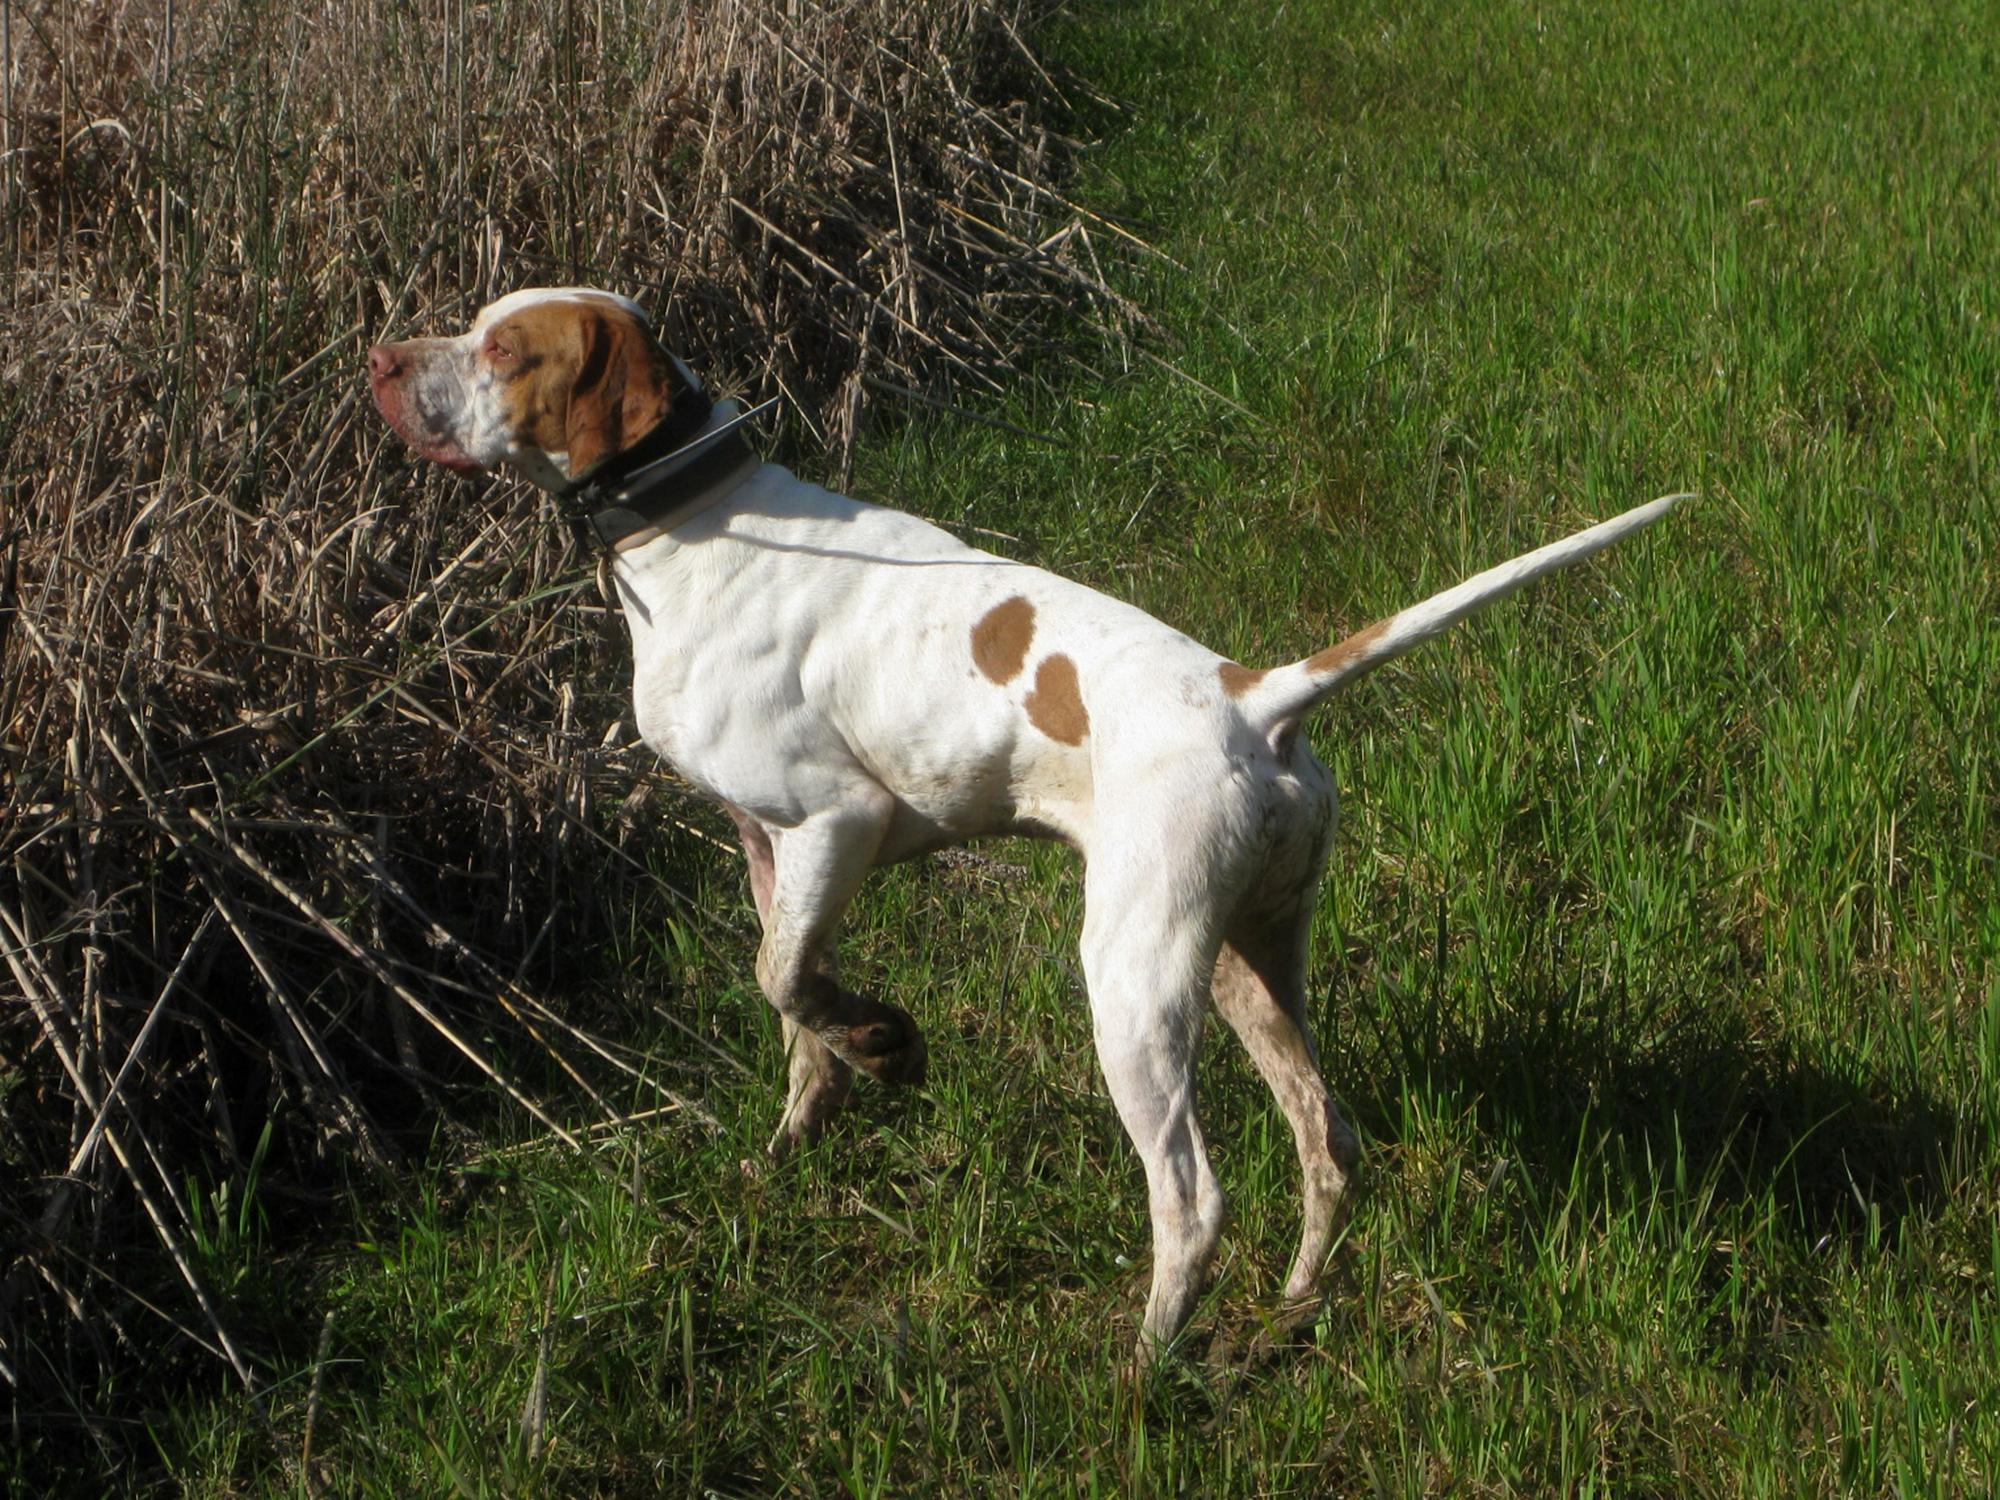 Landowners should consider several factors when preparing hunting leases for their land, including what wildlife species individuals may hunt on the land -- from bobwhite quail to white-tailed deer. (Photo by MSU Extension Service/Daryl Jones)